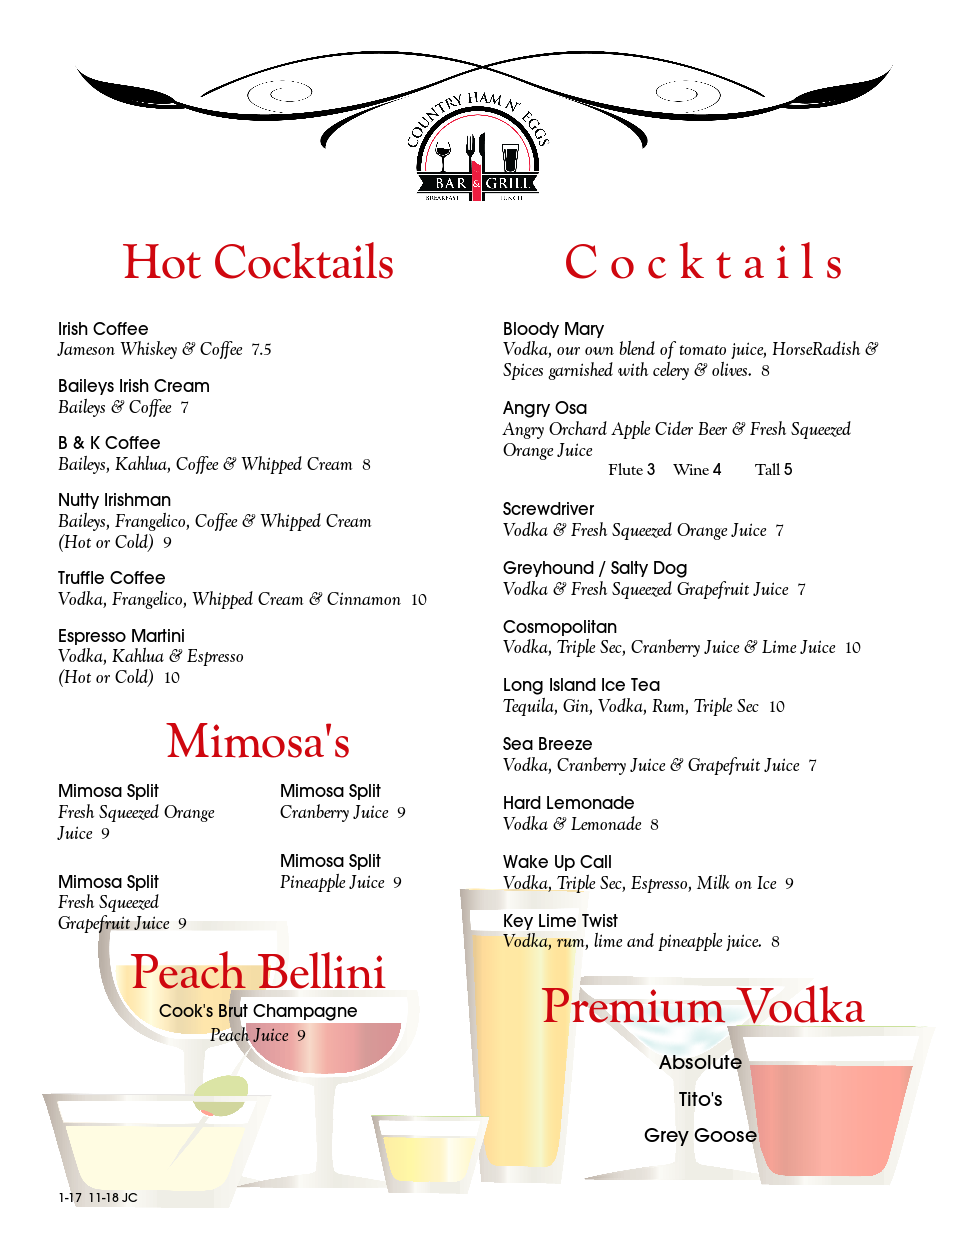 Hot Cocktails, Cocktails, Mimosas, Peach Bellini, And Premium Vodka